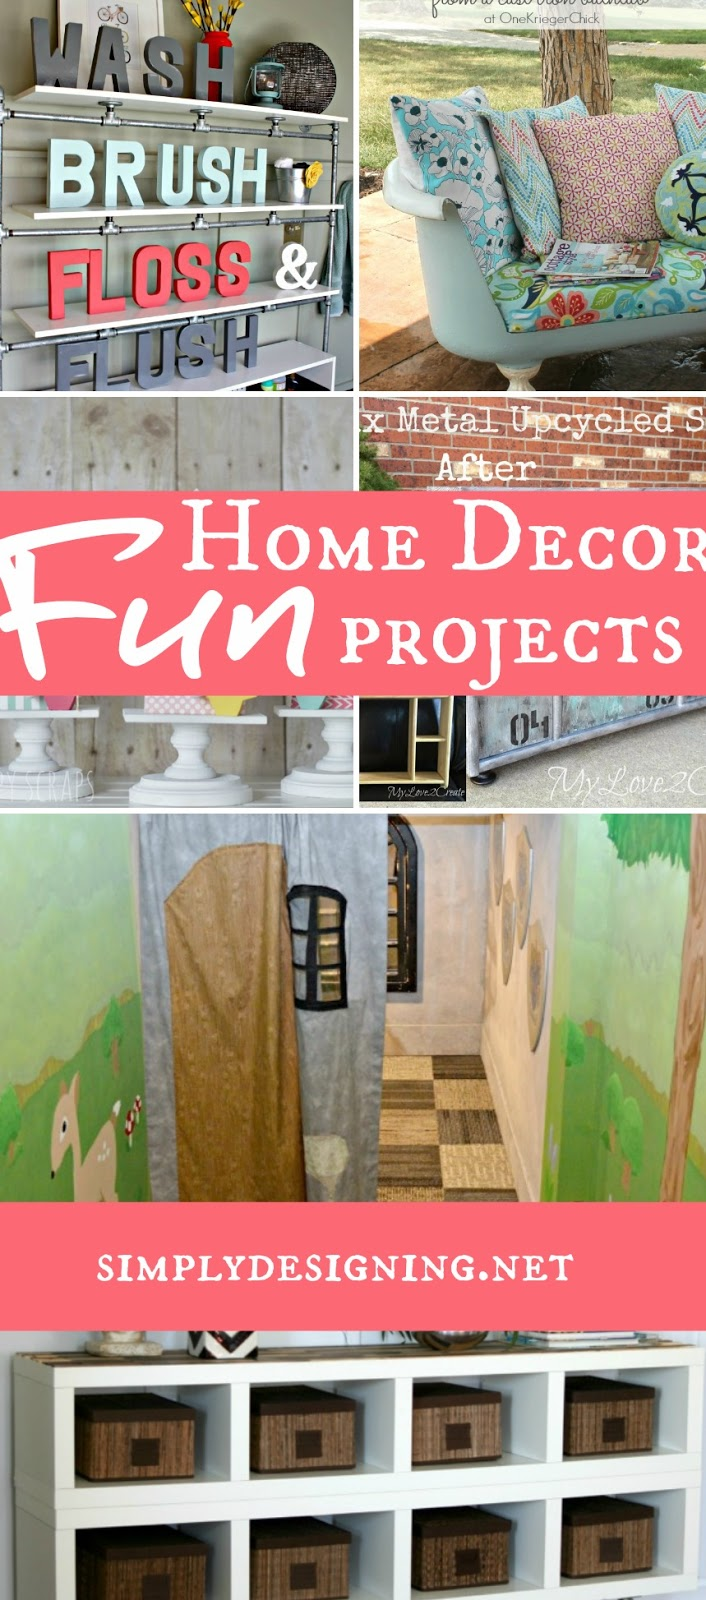 Fun Home Decor Projects | #homedecor #diy #crafts #home